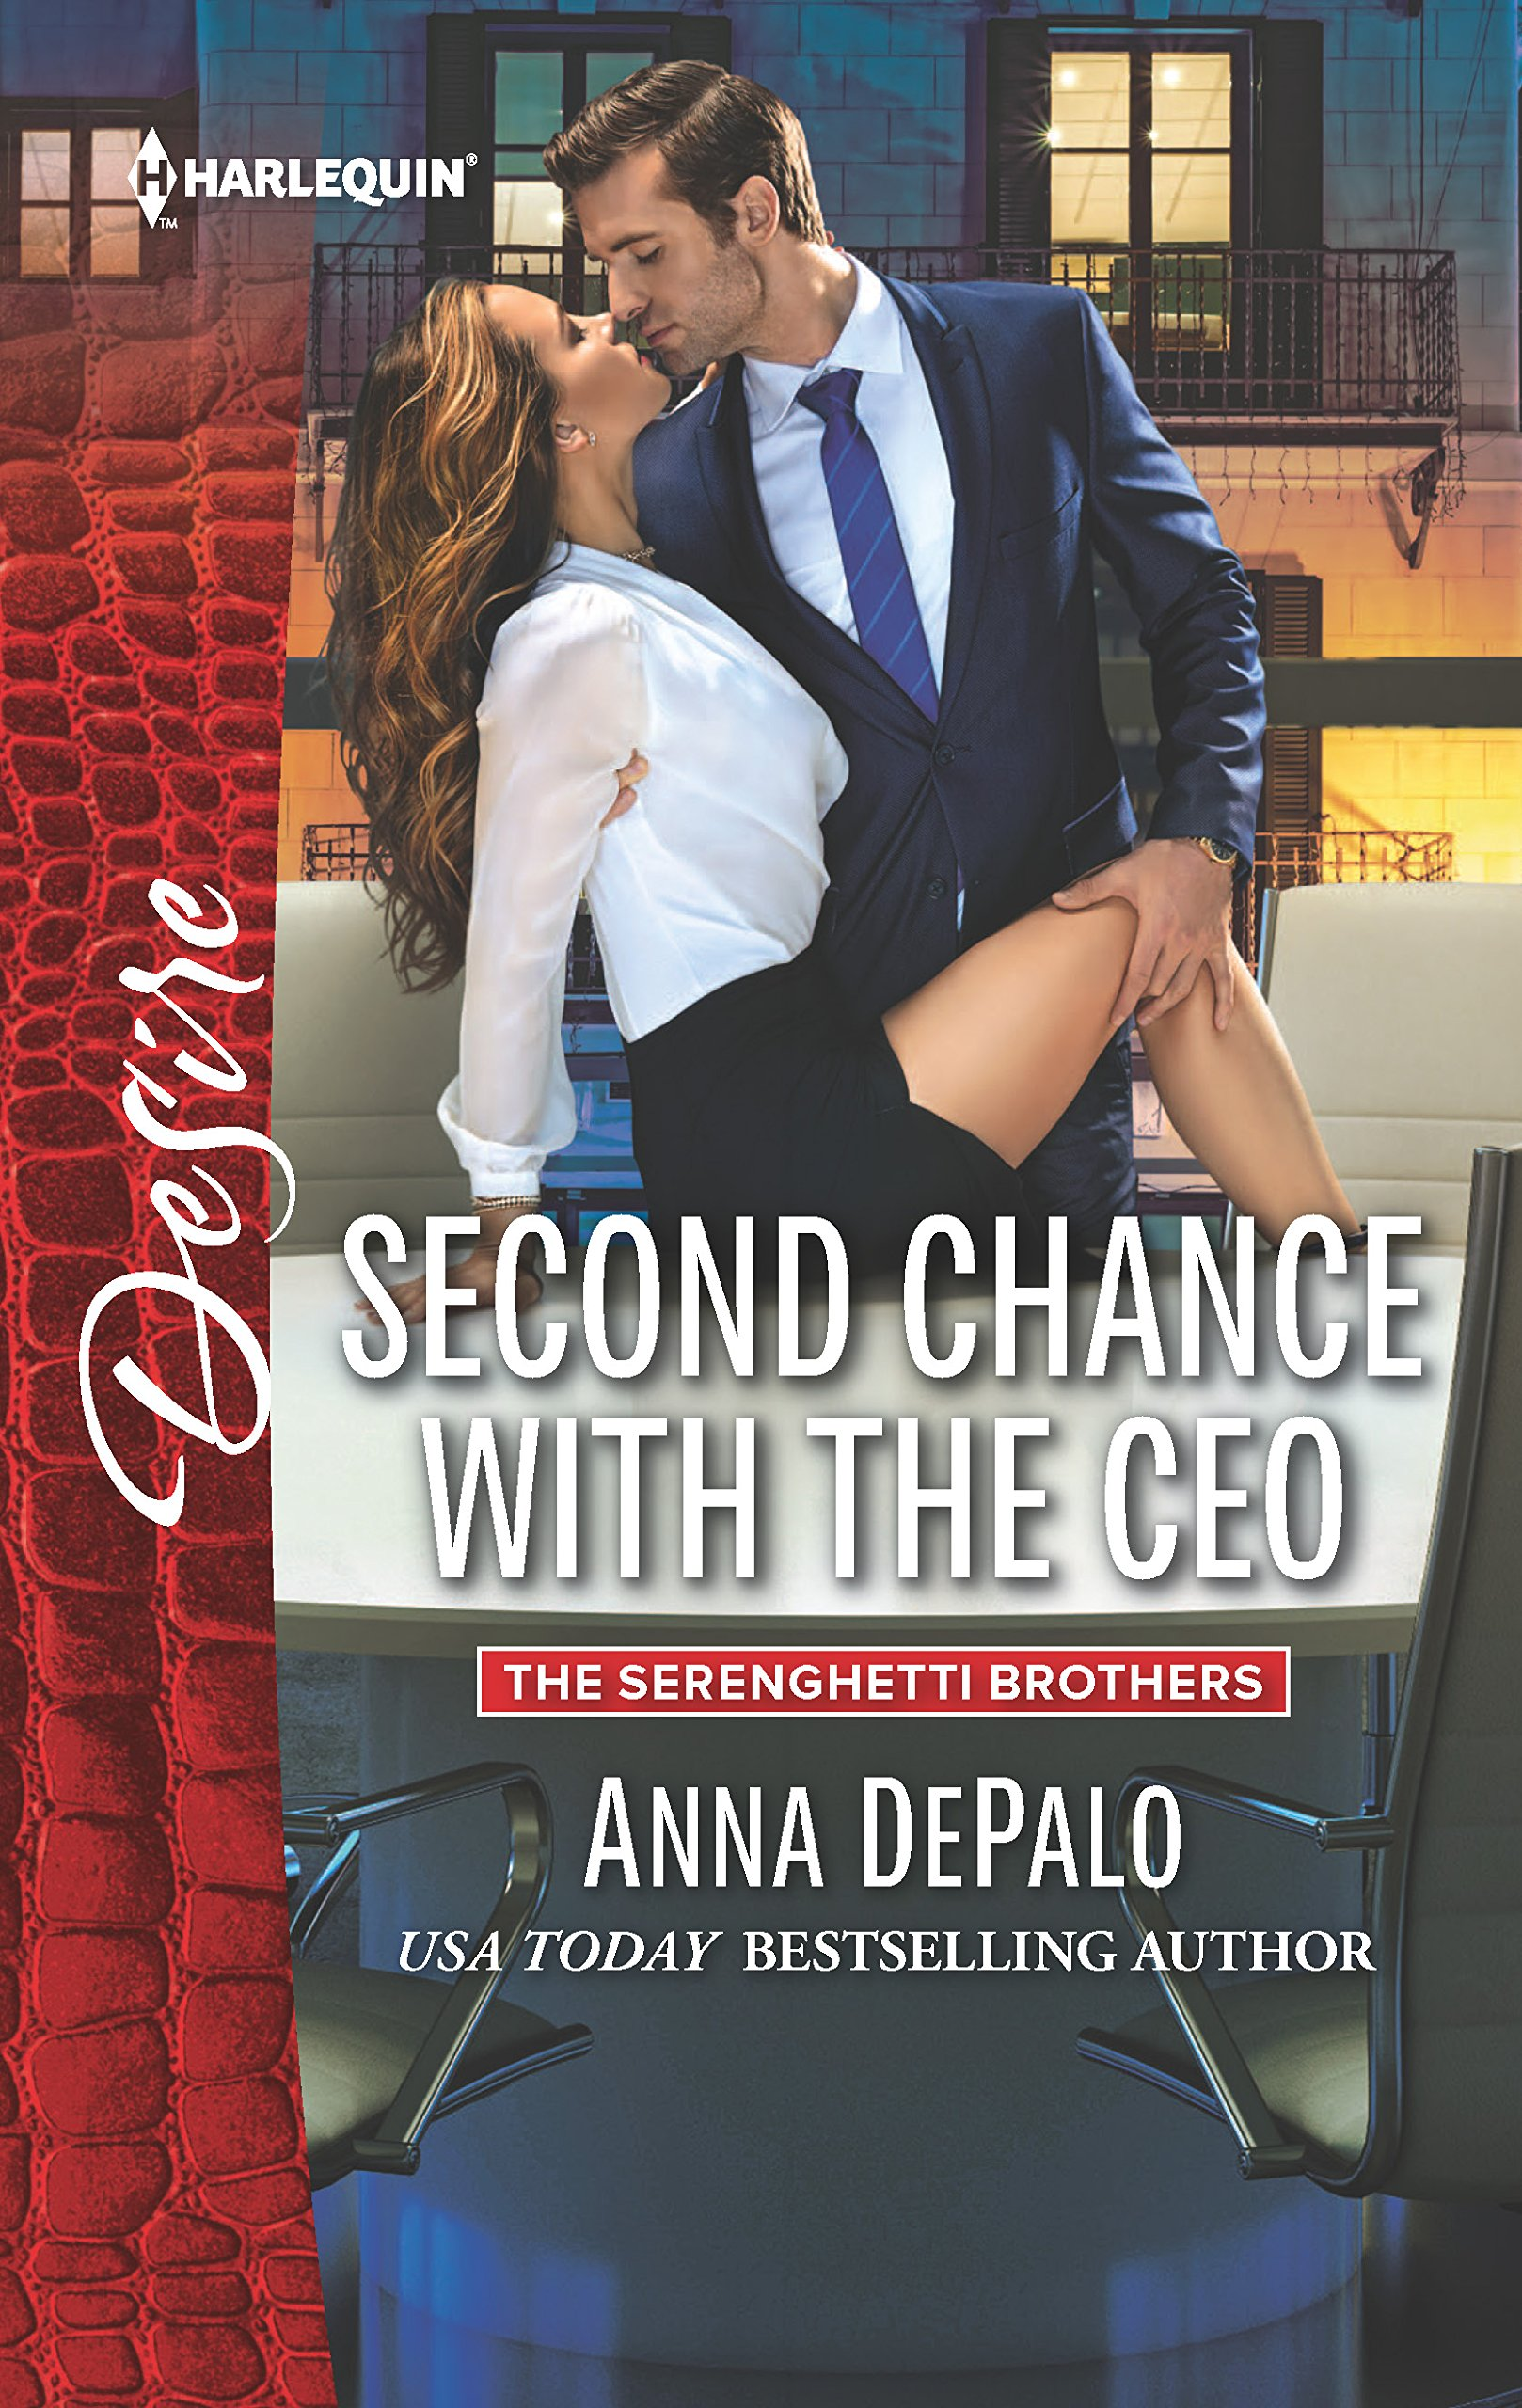 Second Chance CEO Serenghetti Brothers